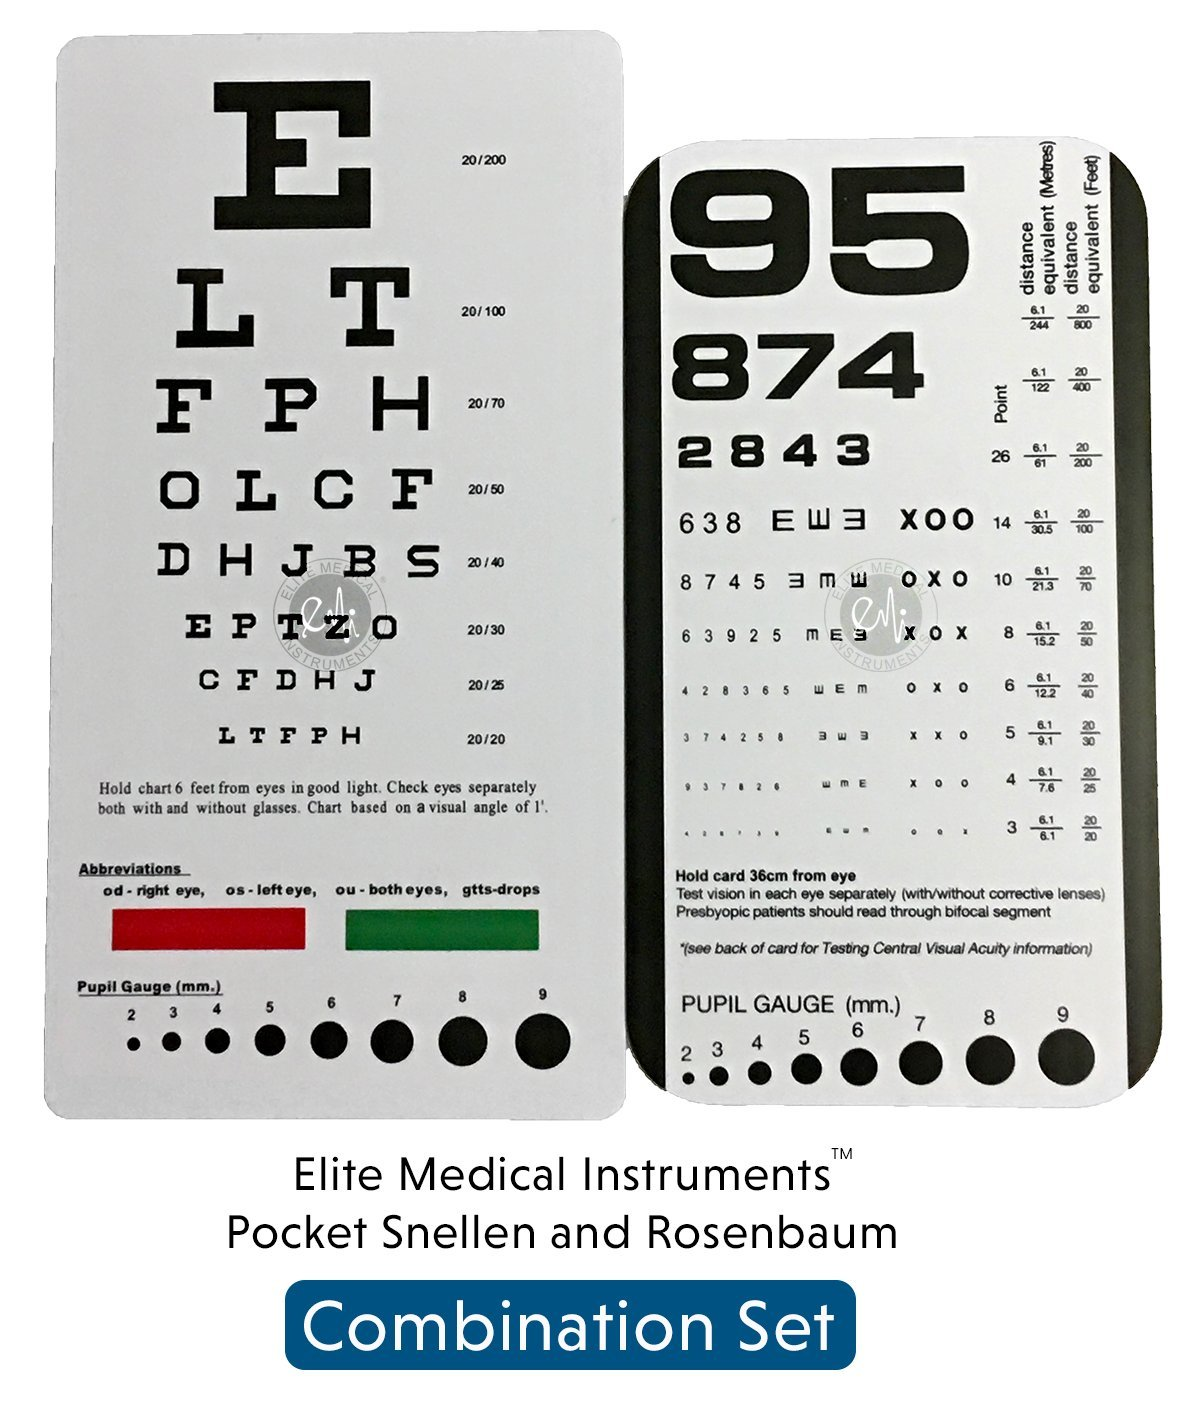 EMI Rosenbaum AND Snellen Pocket Eye Charts - 2 Pack